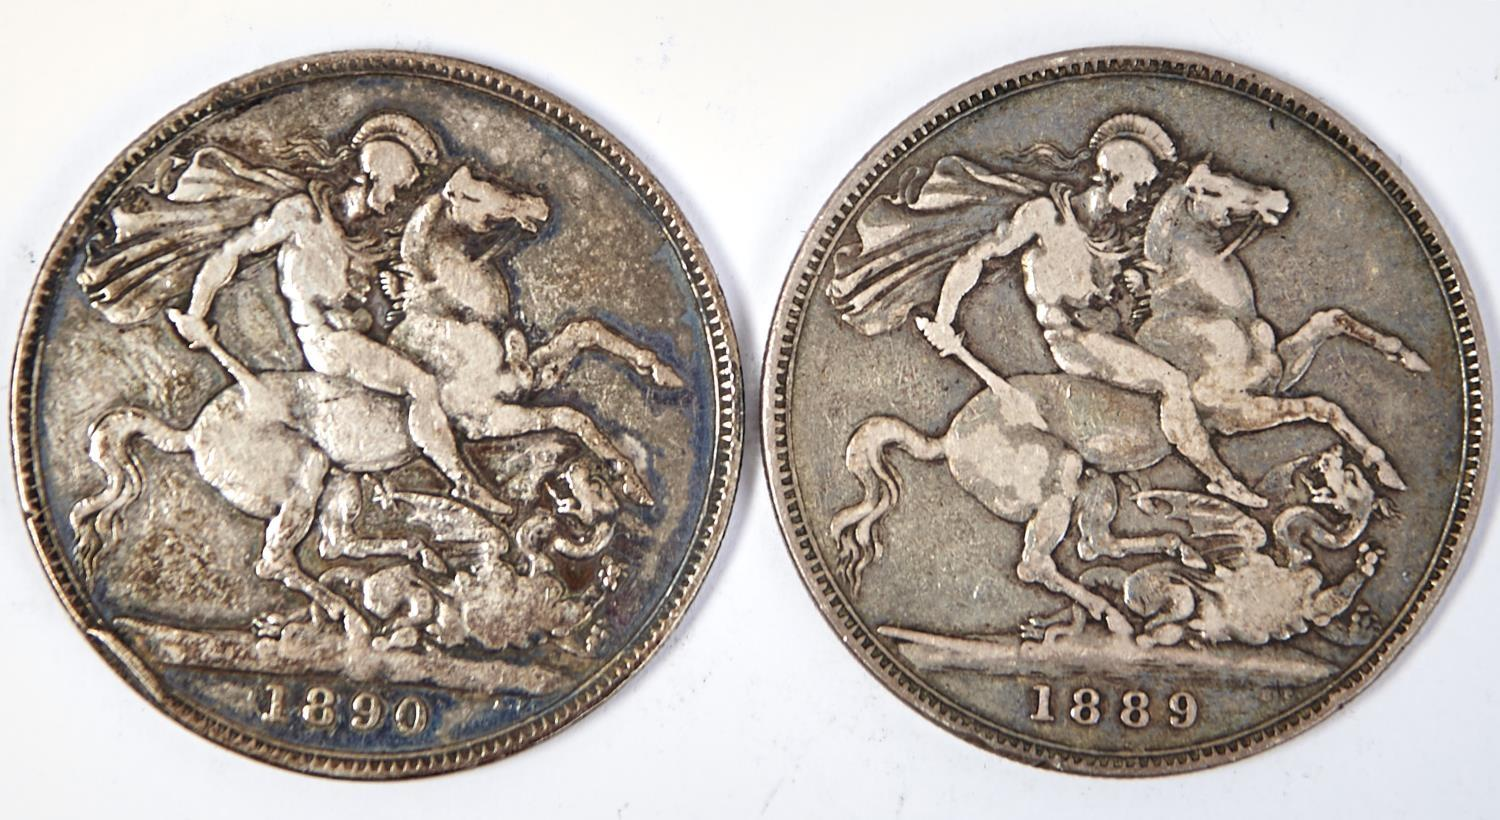 SILVER COINS.  CROWNS 1889 AND 1890 - Image 2 of 2